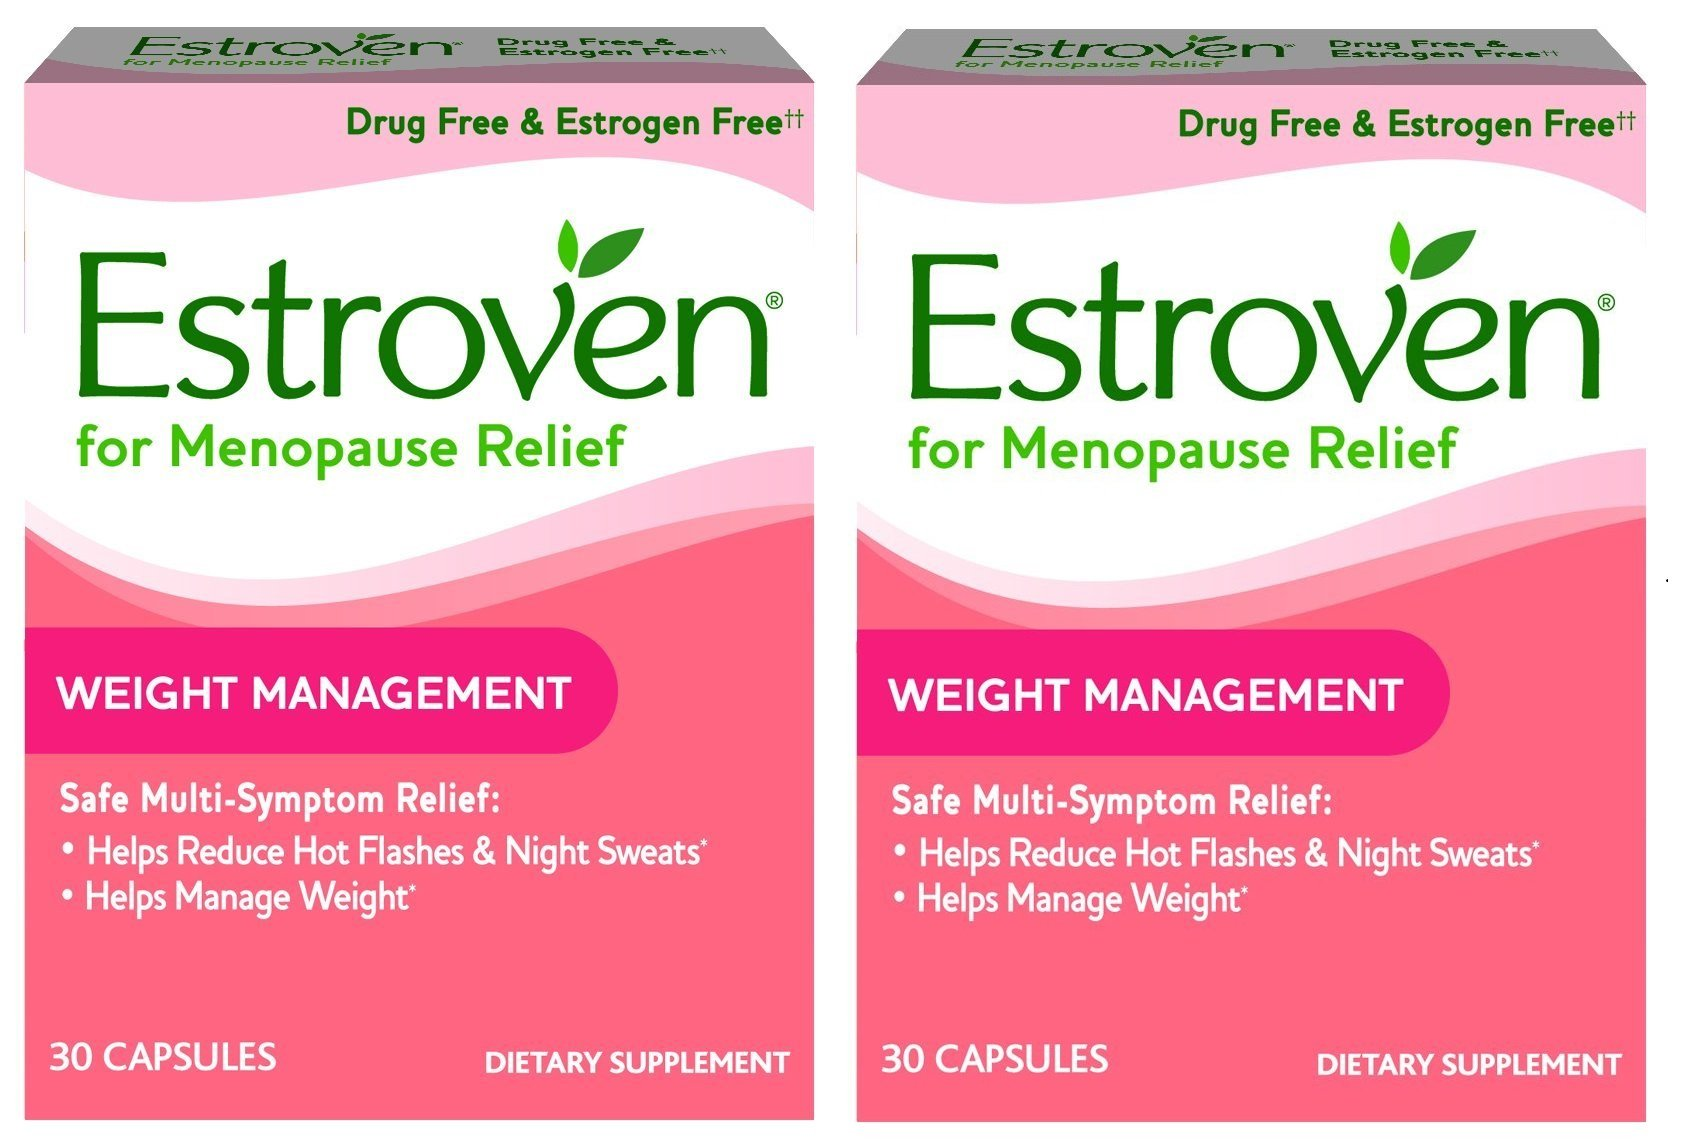 Estroven Weight Management - Multi-Symptom Menopause Relief* - With Ingredients to Help Reduce Hot Flashes and Night Sweats* - 30 Capsules - Pack of 2 by Estroven